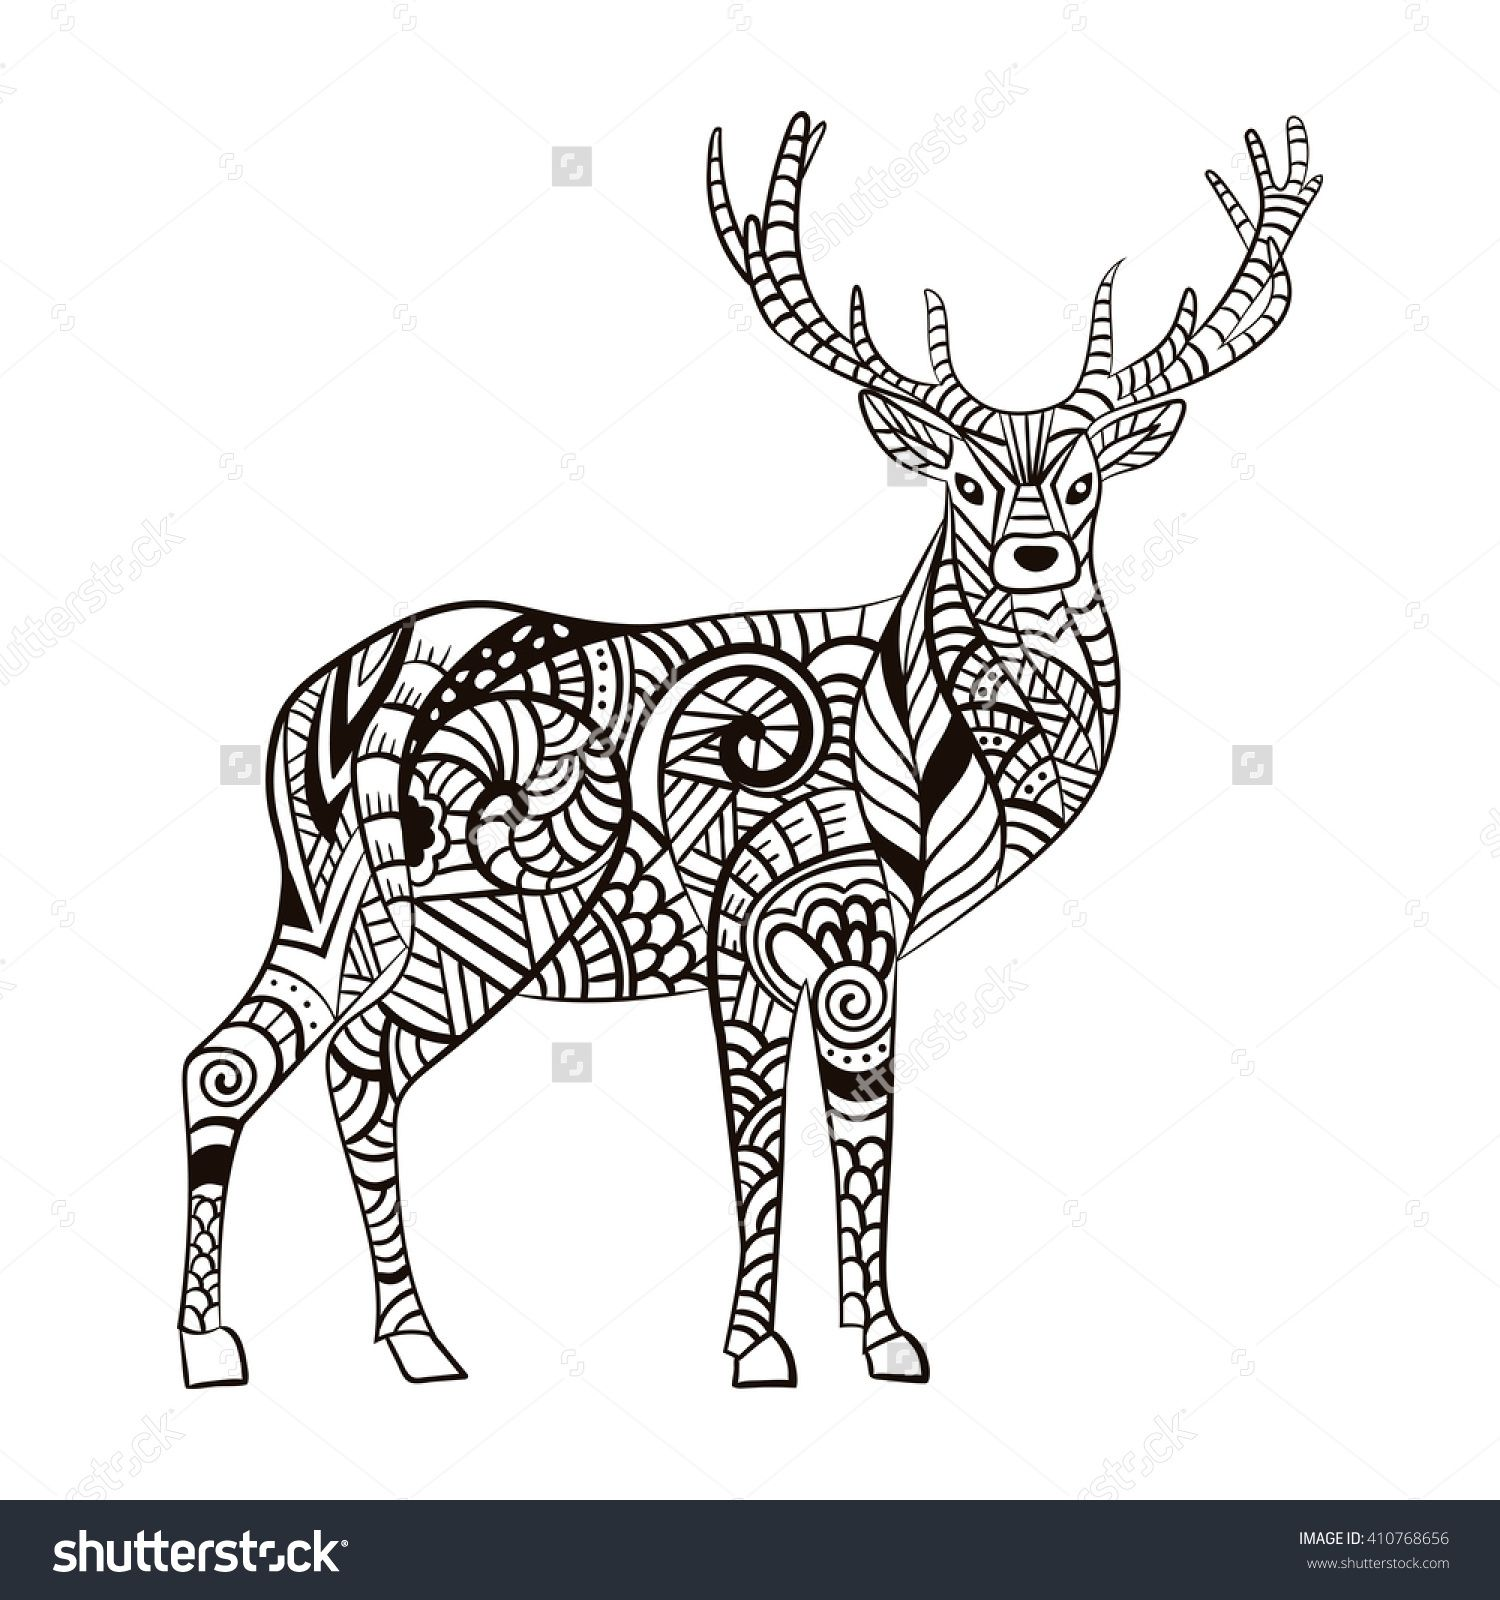 Pin by Barbara on coloring deer Pinterest